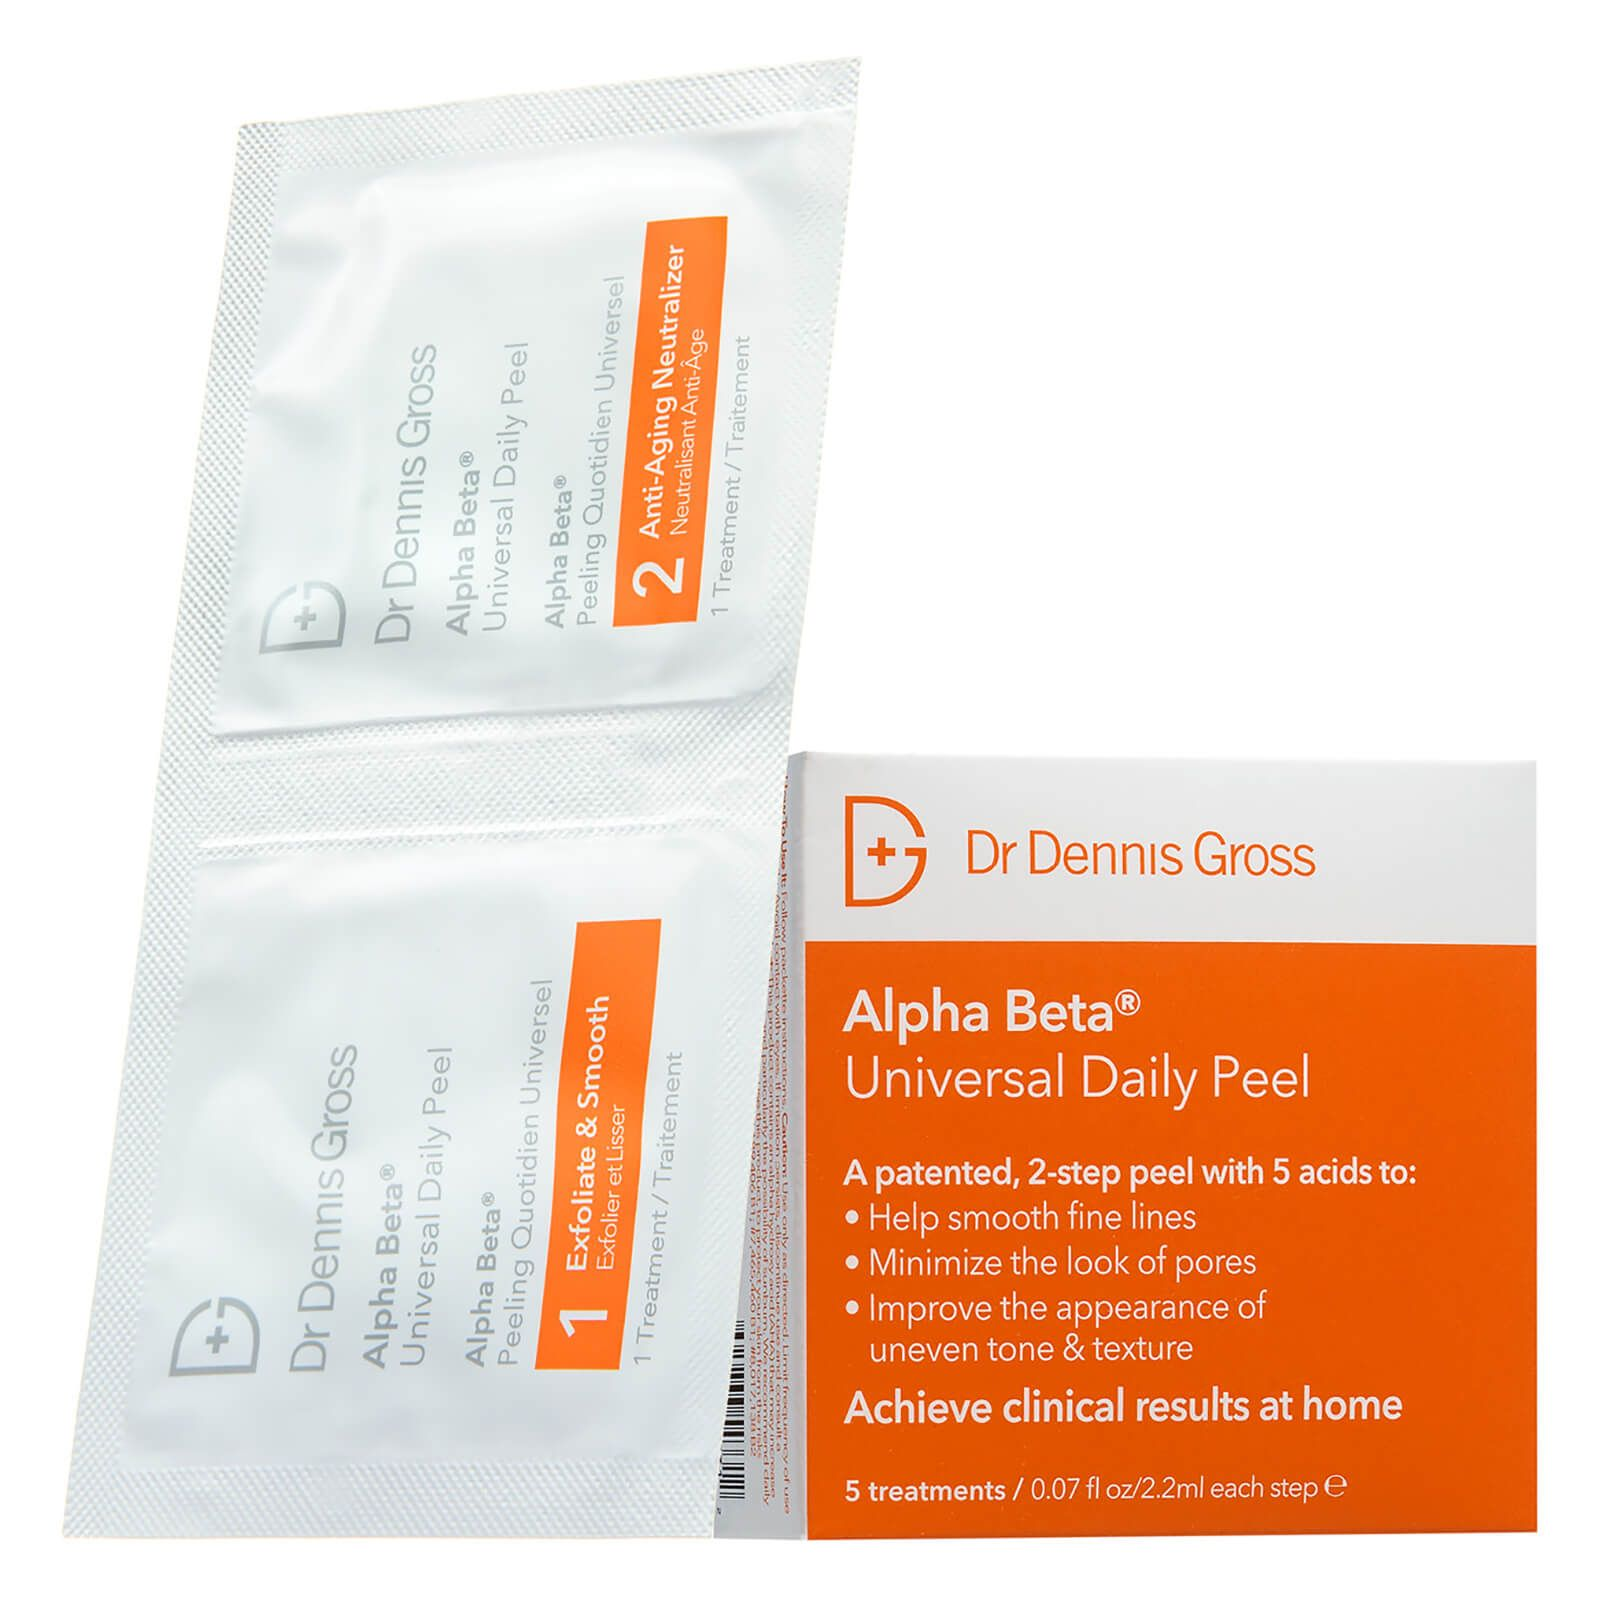 My Celebrity Life – Dr Dennis Gross Skincare Alpha Beta Daily Peel 5 Packettes